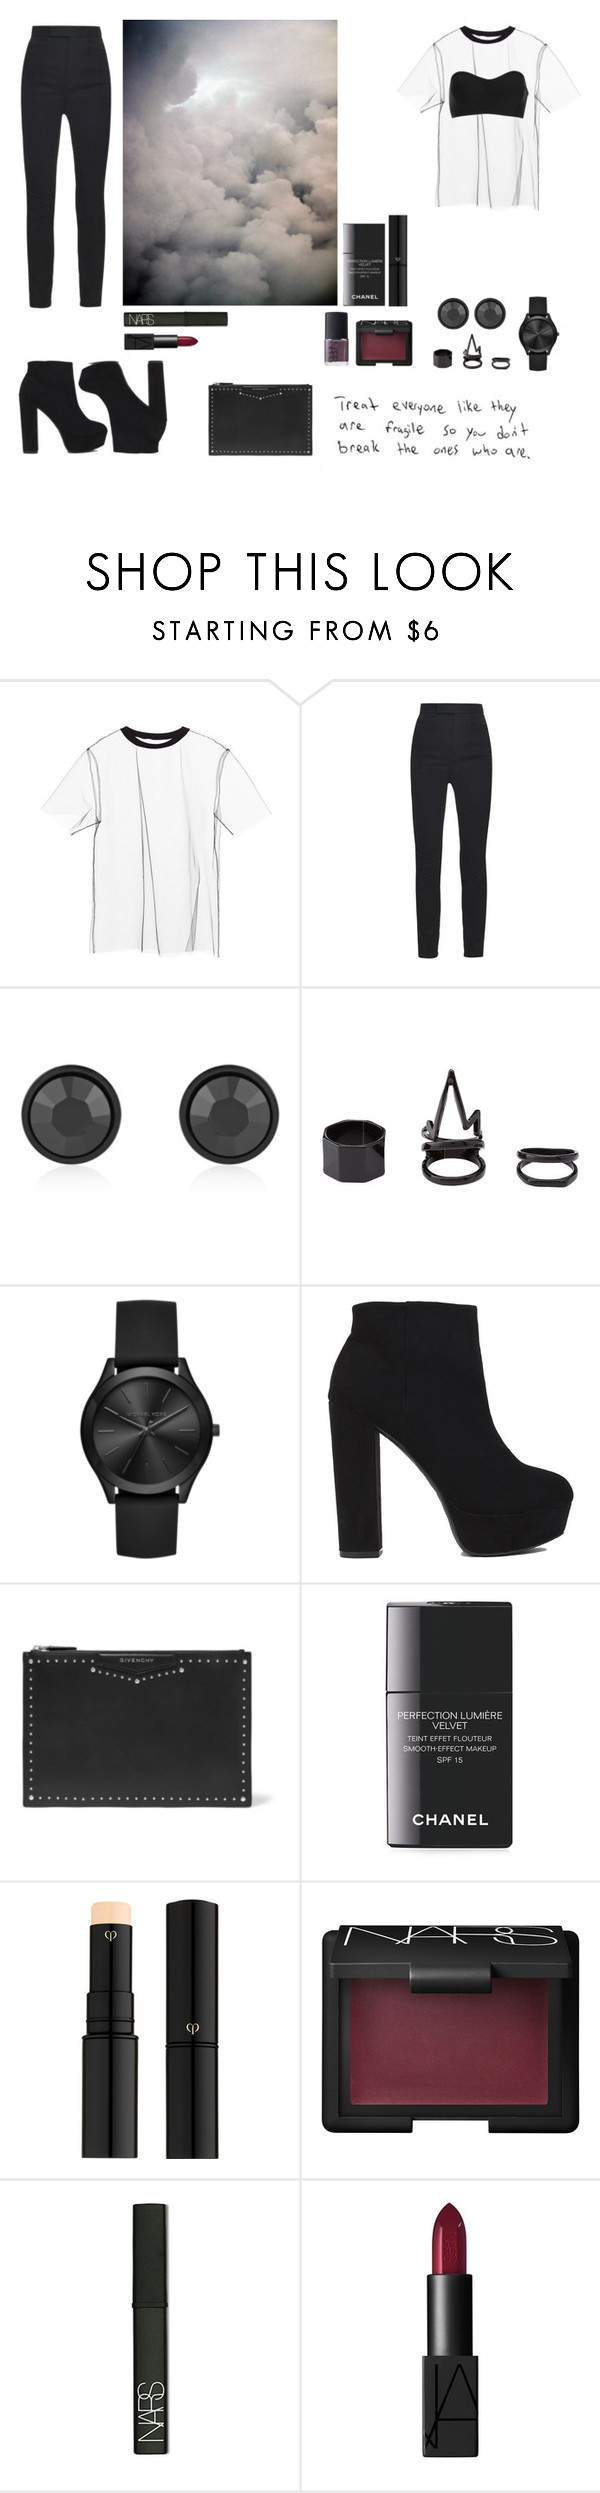 """""""XLVIII"""" by angie-5soslm ❤ liked on Polyvore featuring MSGM, Haider Ackermann, Givenchy, Charlotte Russe, Michael Kors, Chanel, Clé de Peau Beauté and NARS Cosmetics"""